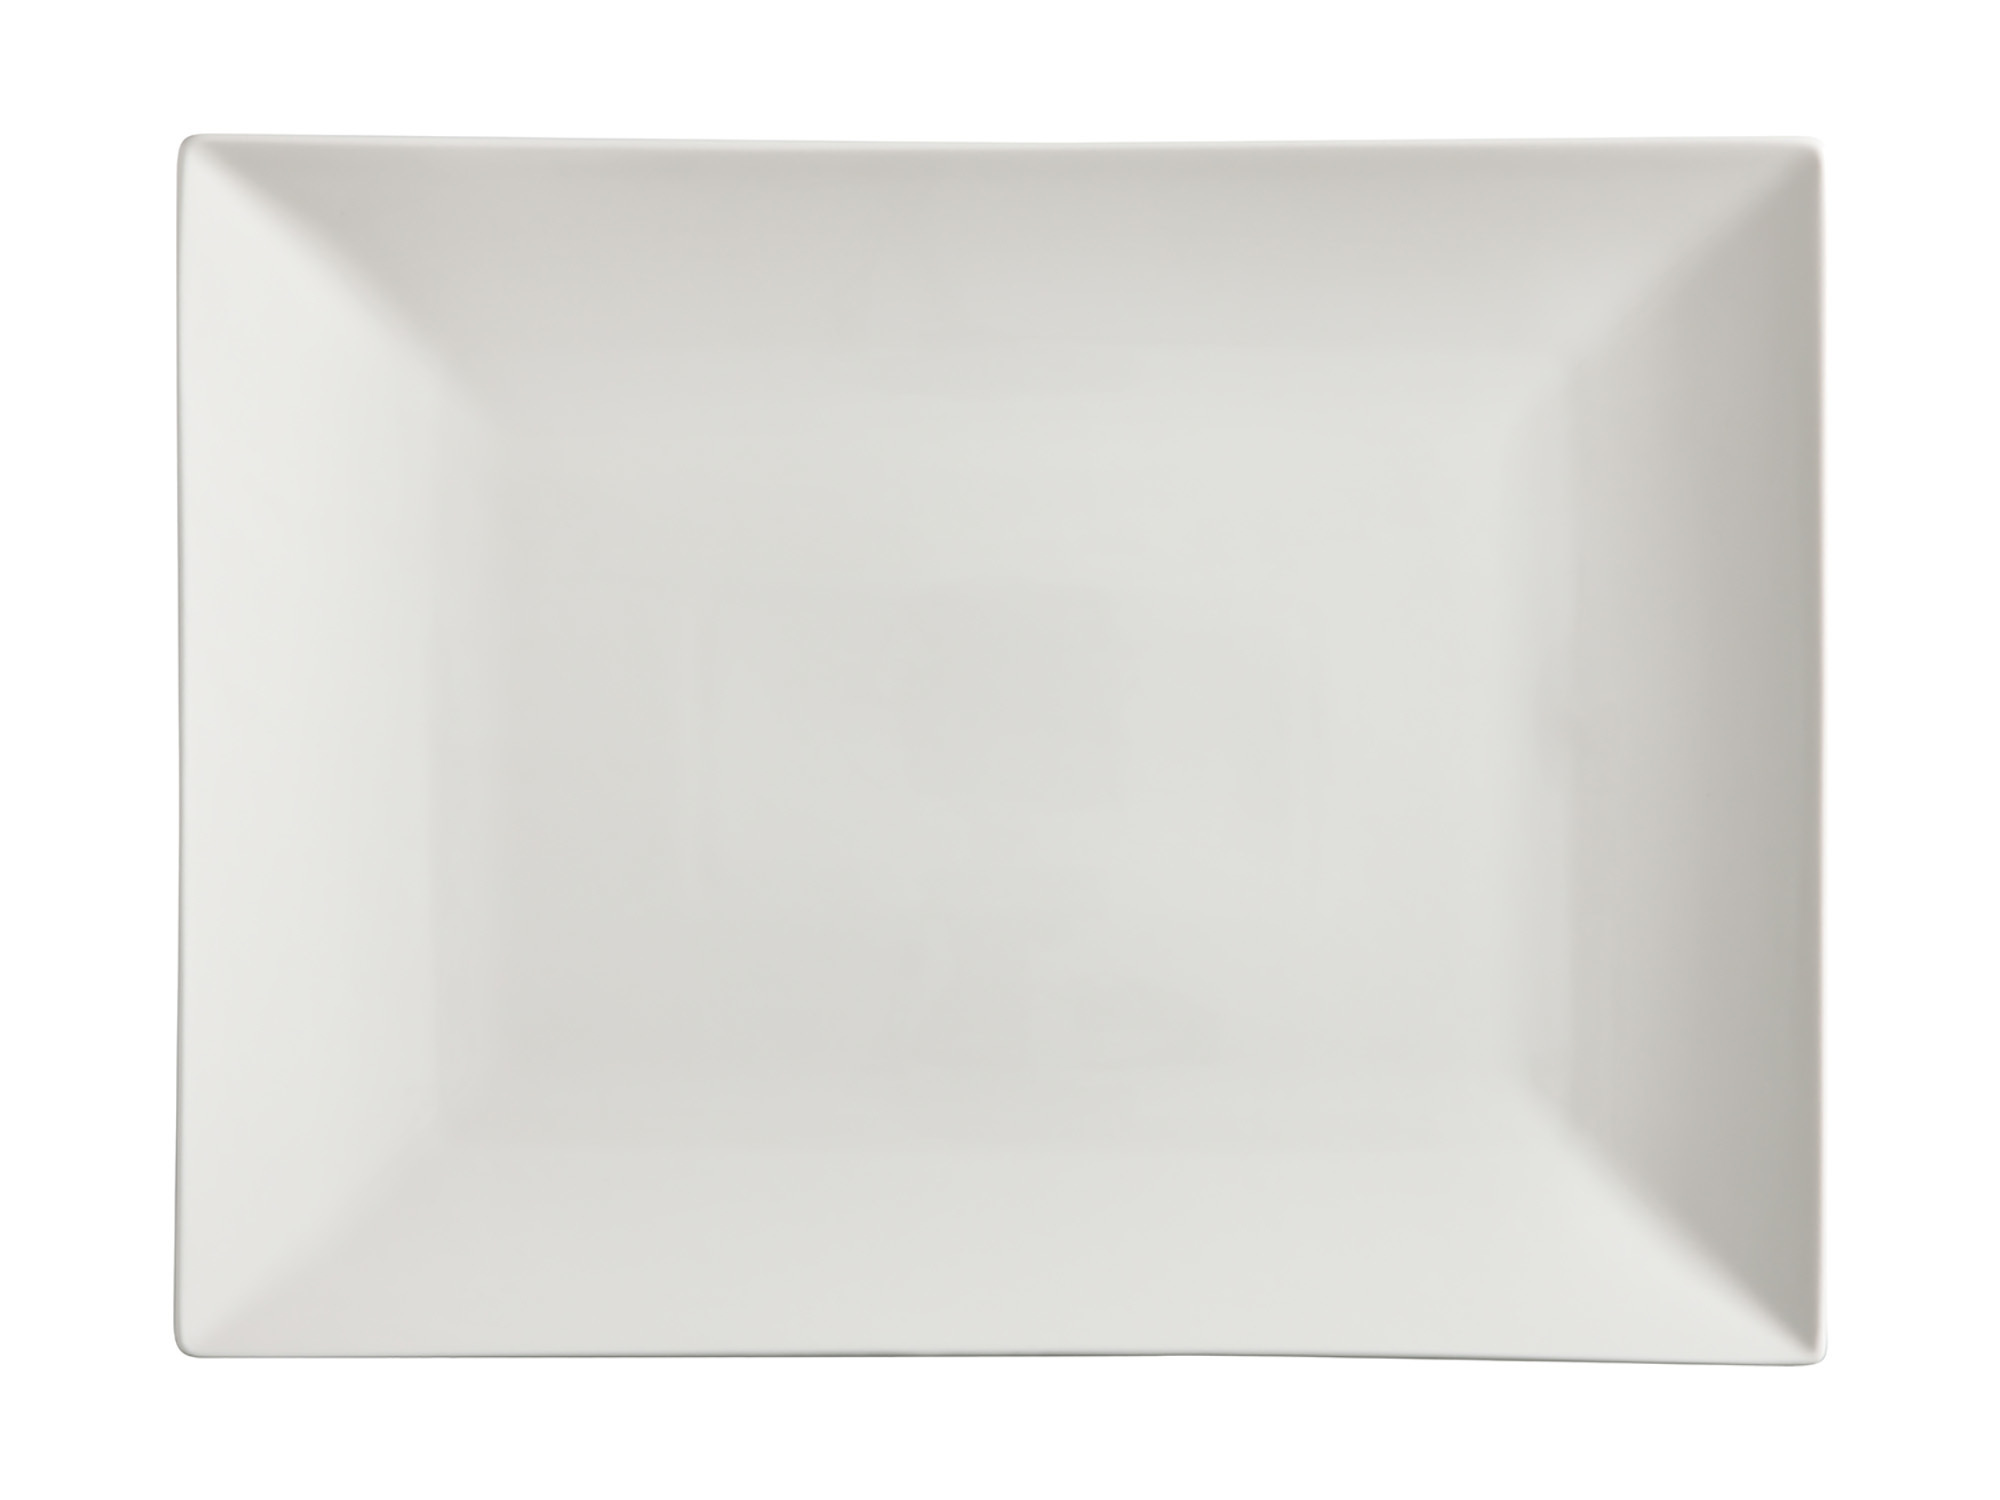 Maxwell & Williams White Basics Linear 40X30Cm Rectangle Platter Gift Boxed